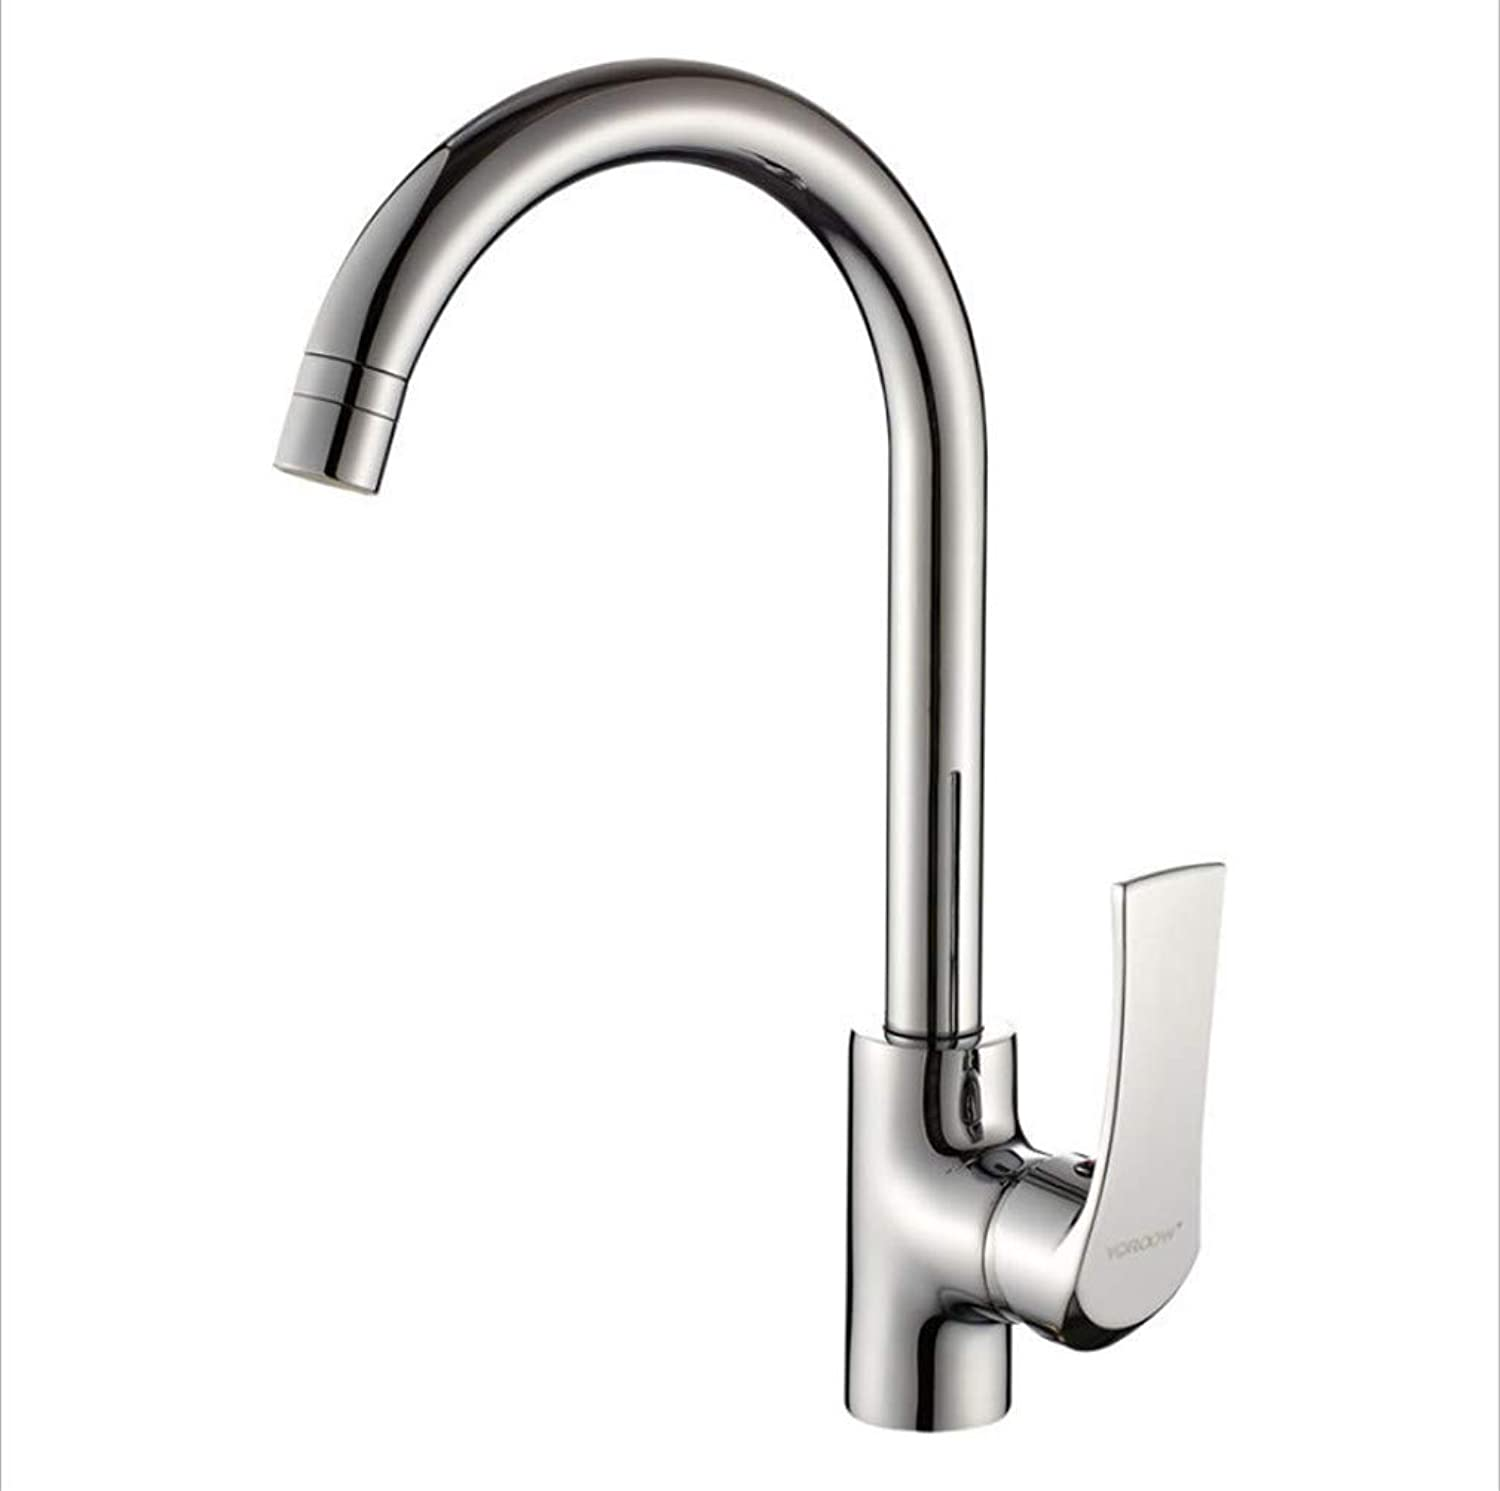 Kitchen Sink Taps Bathroom Taps Kitchen Faucet Wash Basin Hot and Cold Water Tank Copper Tap Environmental Predection Faucet.